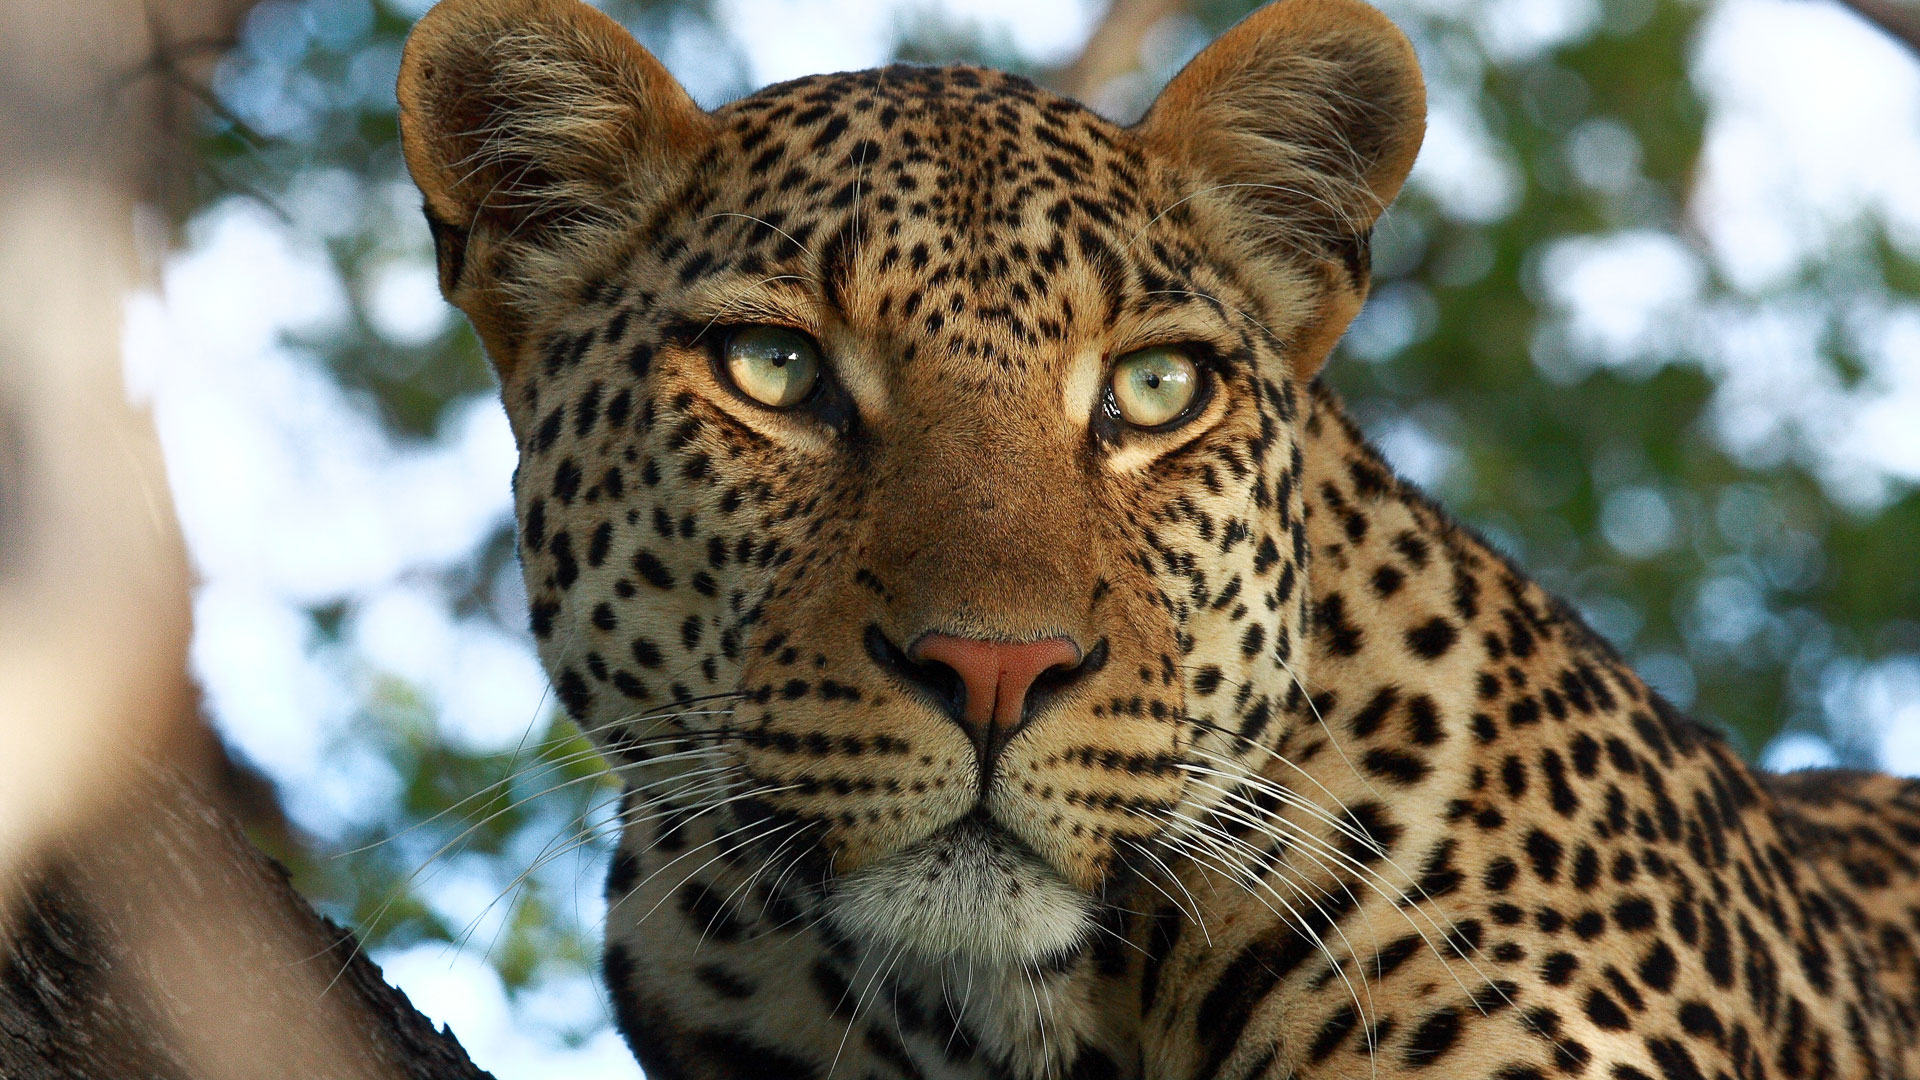 Tanda Tula - Shnoppie the leopard in South Africa